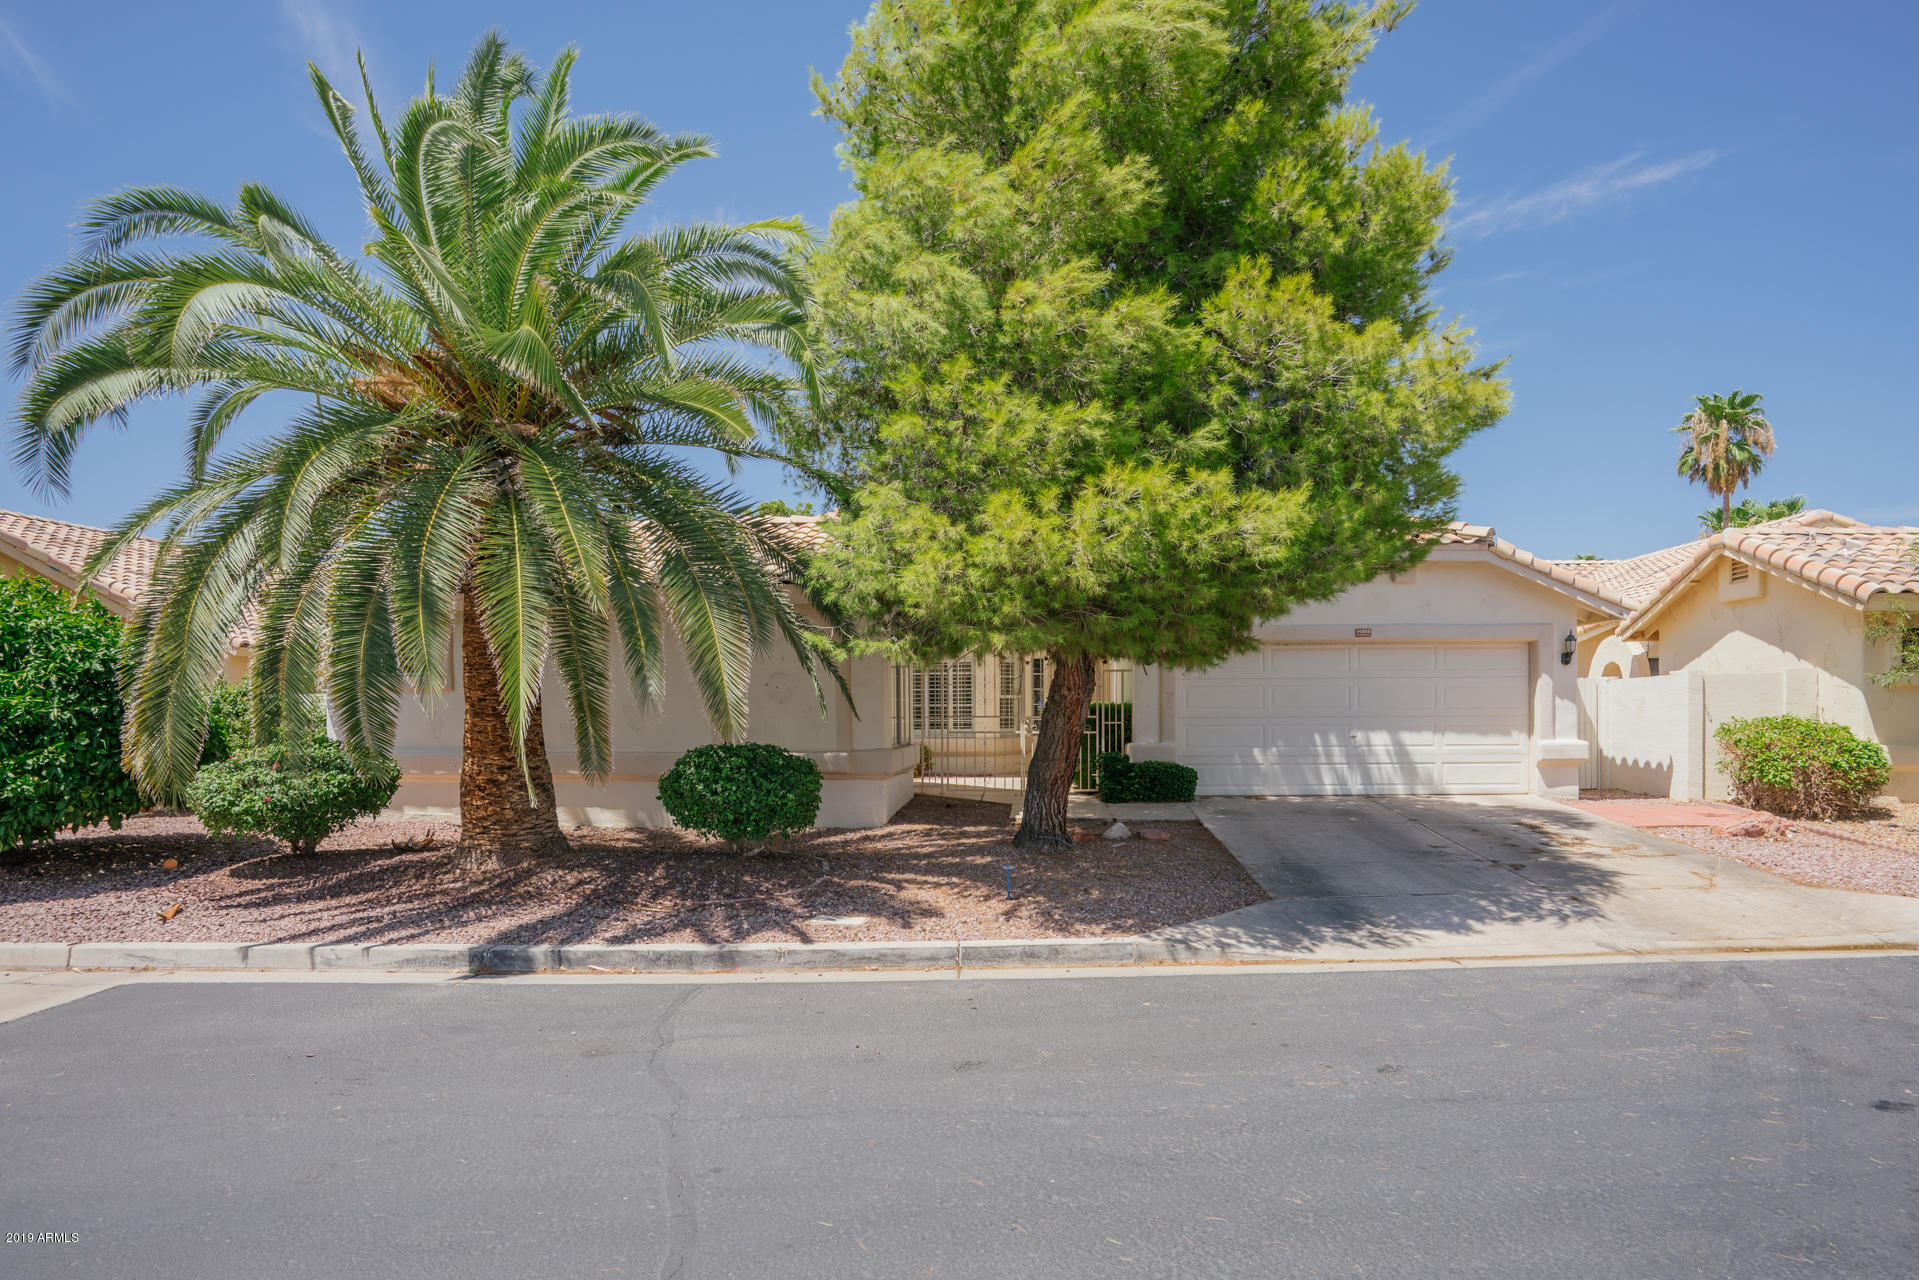 14258 W SHAWNEE Trail, Surprise, Arizona